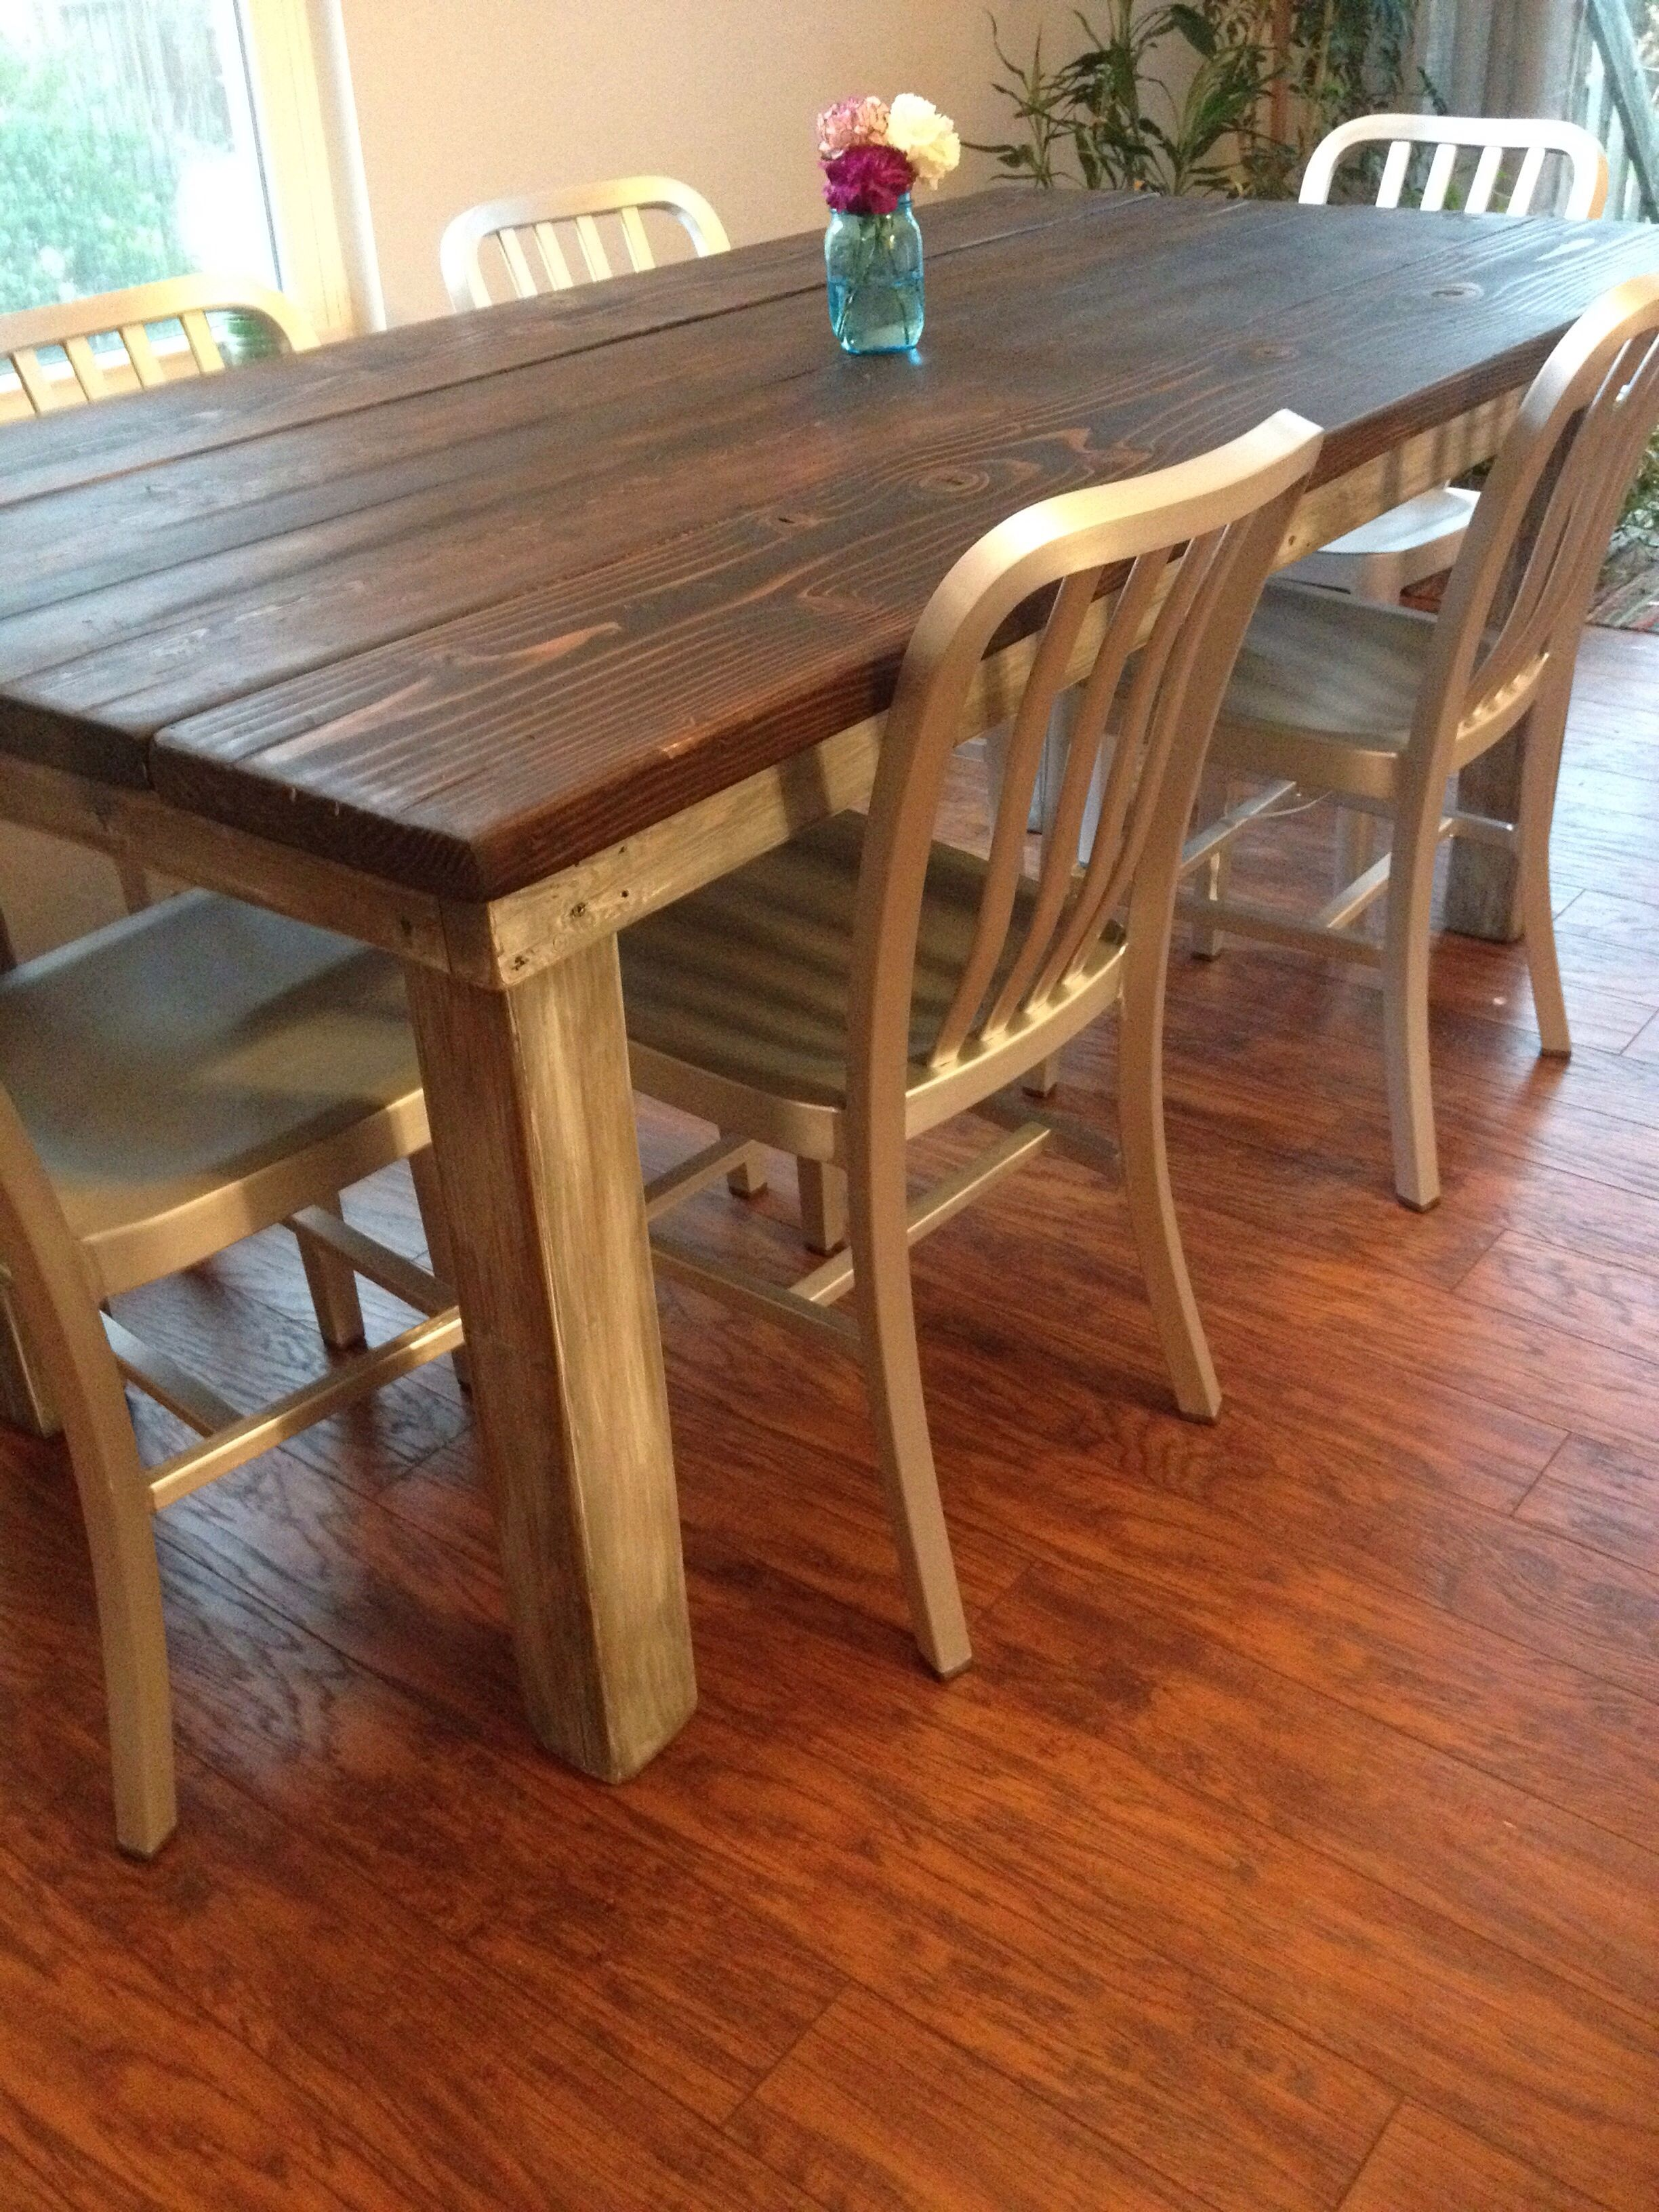 Custom planked top farmhouse table with dark walnut stain and  white washed gray. Custom planked top farmhouse table with dark walnut stain and